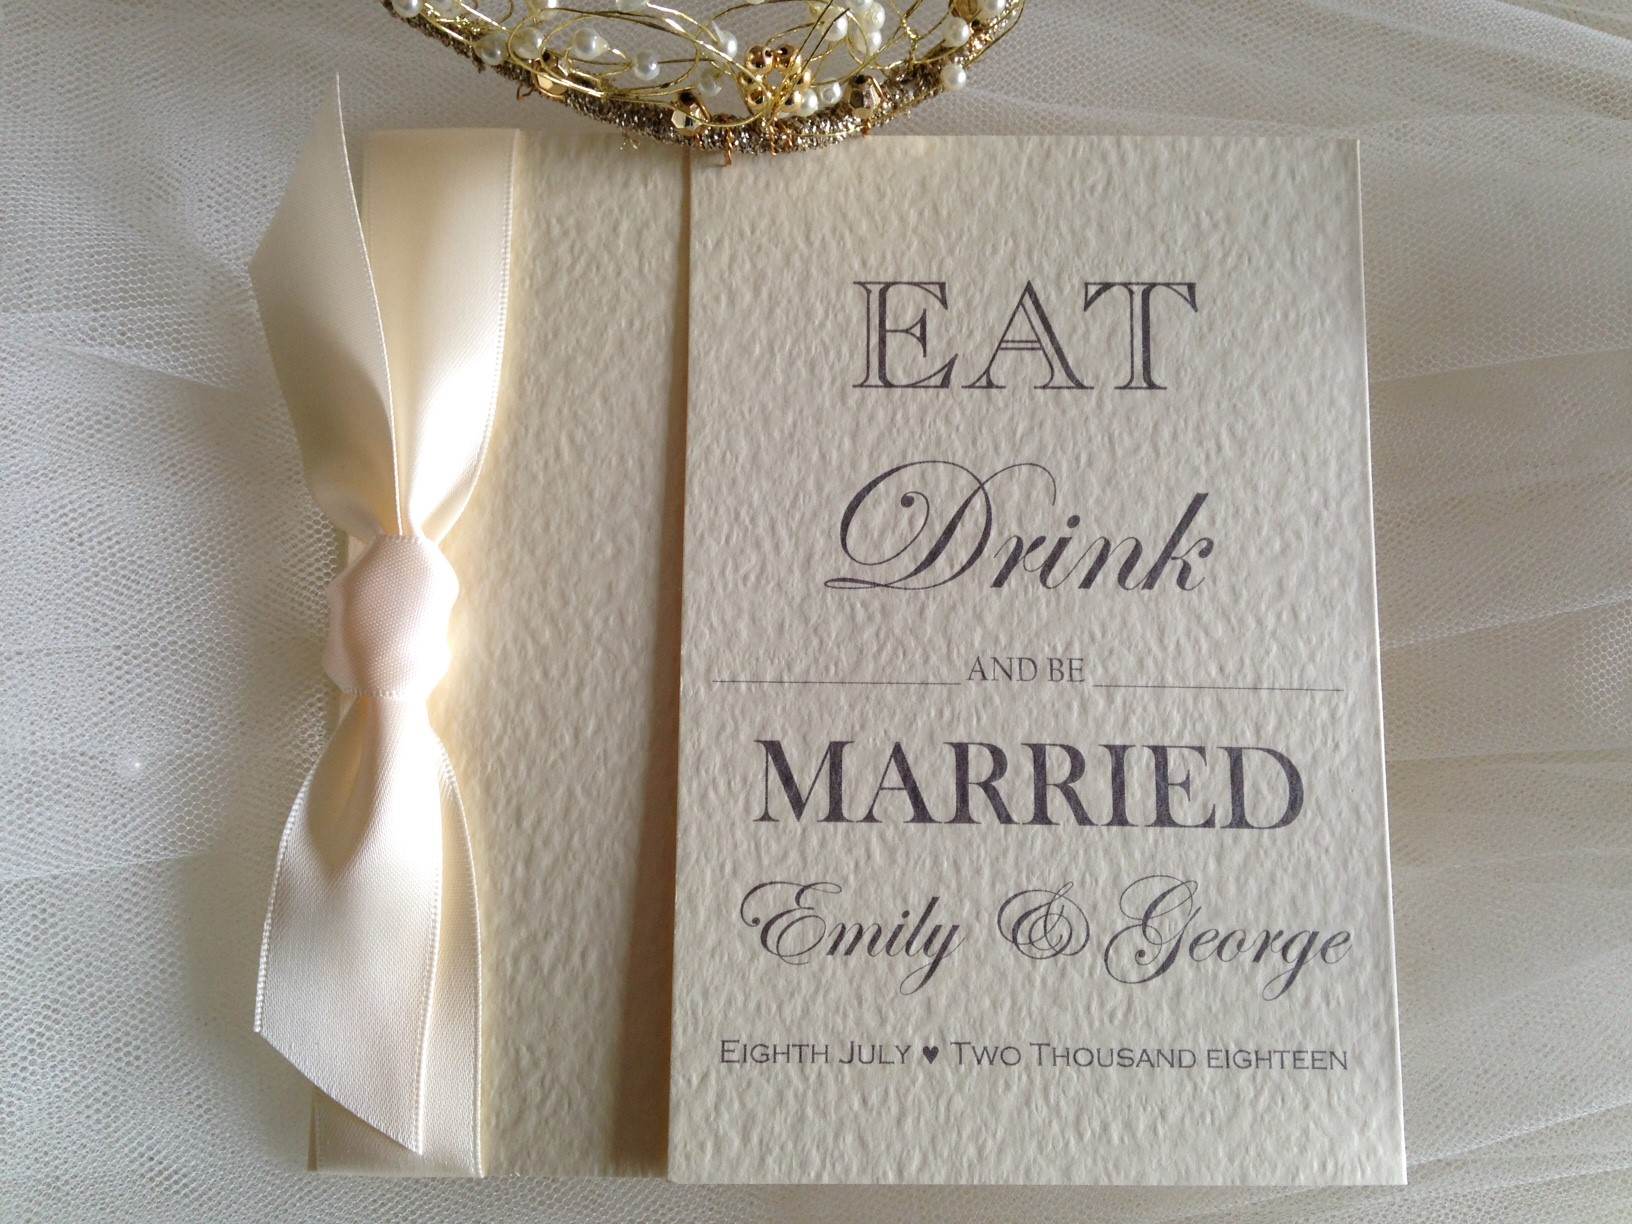 Eat, Drink And Be Married Square Gatefold Wedding Invitations · Facebook  Twitter Google+ Pinterest Tumblr